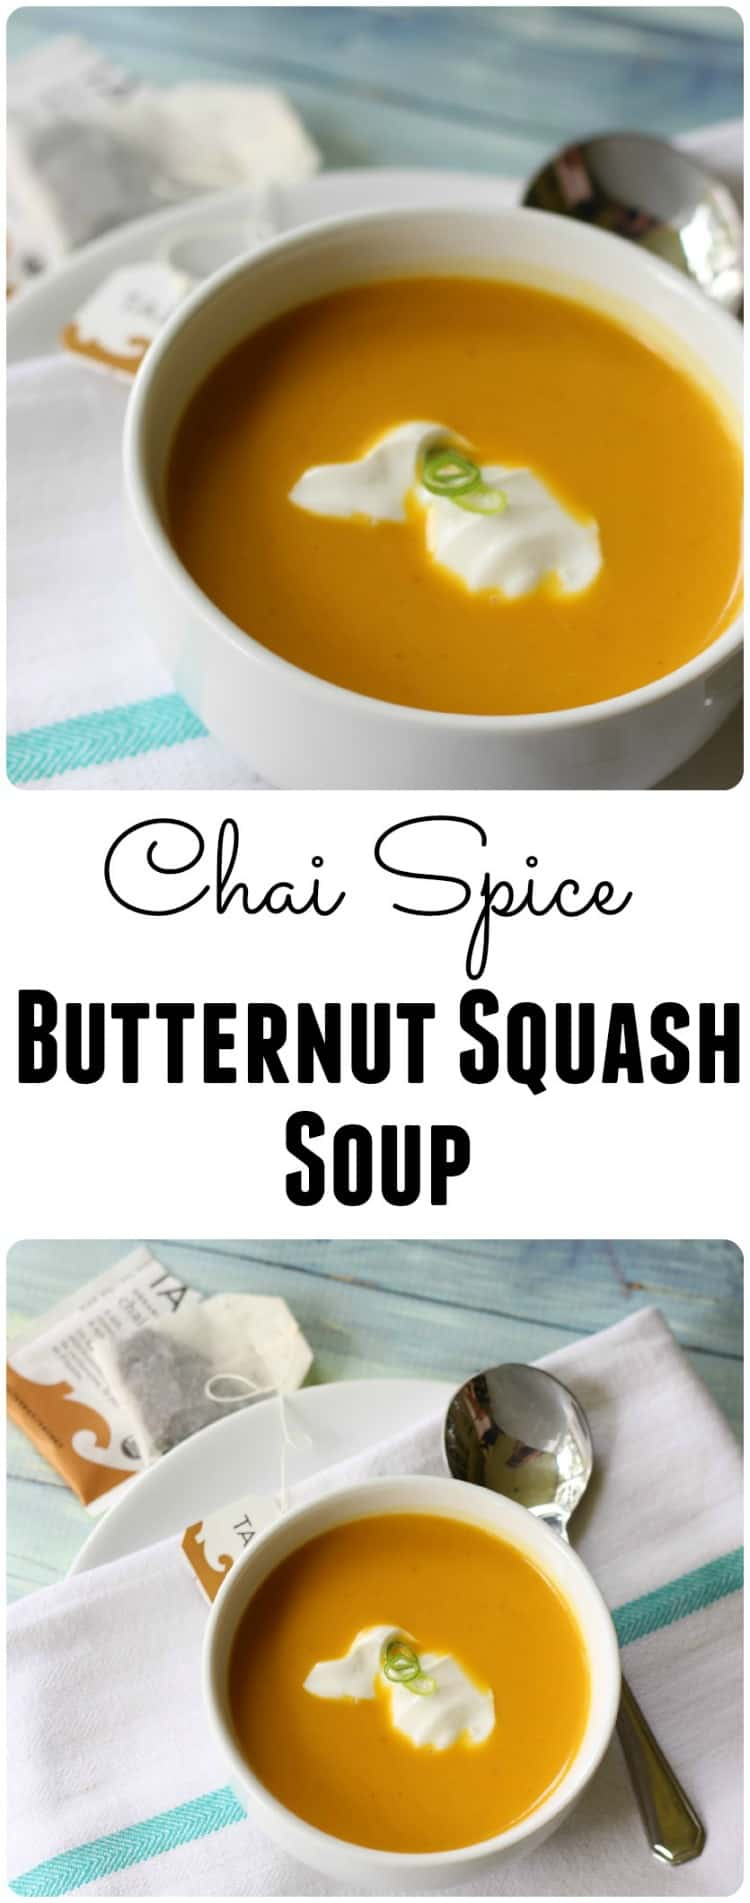 This Chai Spice Butternut Squash Soup Recipe is easy to make, delicious and full of warm toned flavors.